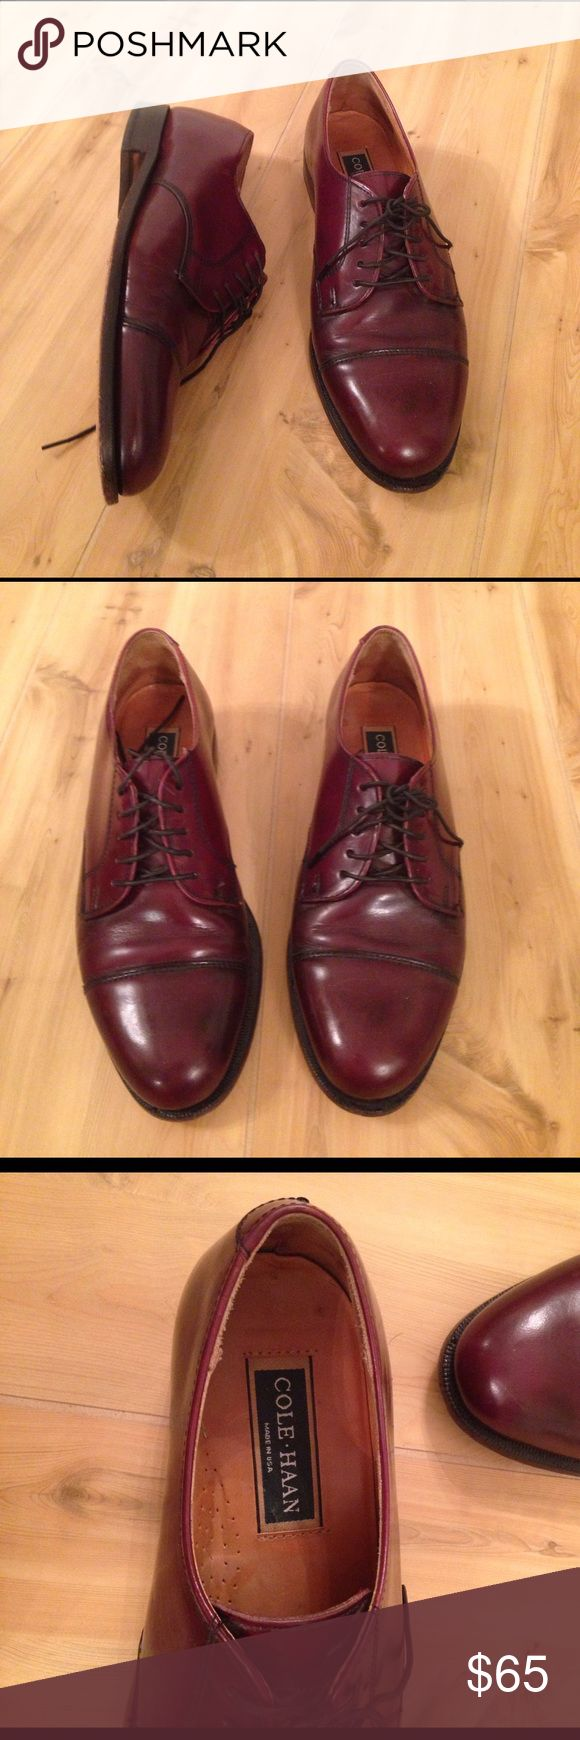 Cole Haan Dress Shoes Brown dress shoes by Cole Haan. They are used, but really good condition. Please see picture to reference size. 8 5 D Cole Haan Shoes Oxfords & Derbys